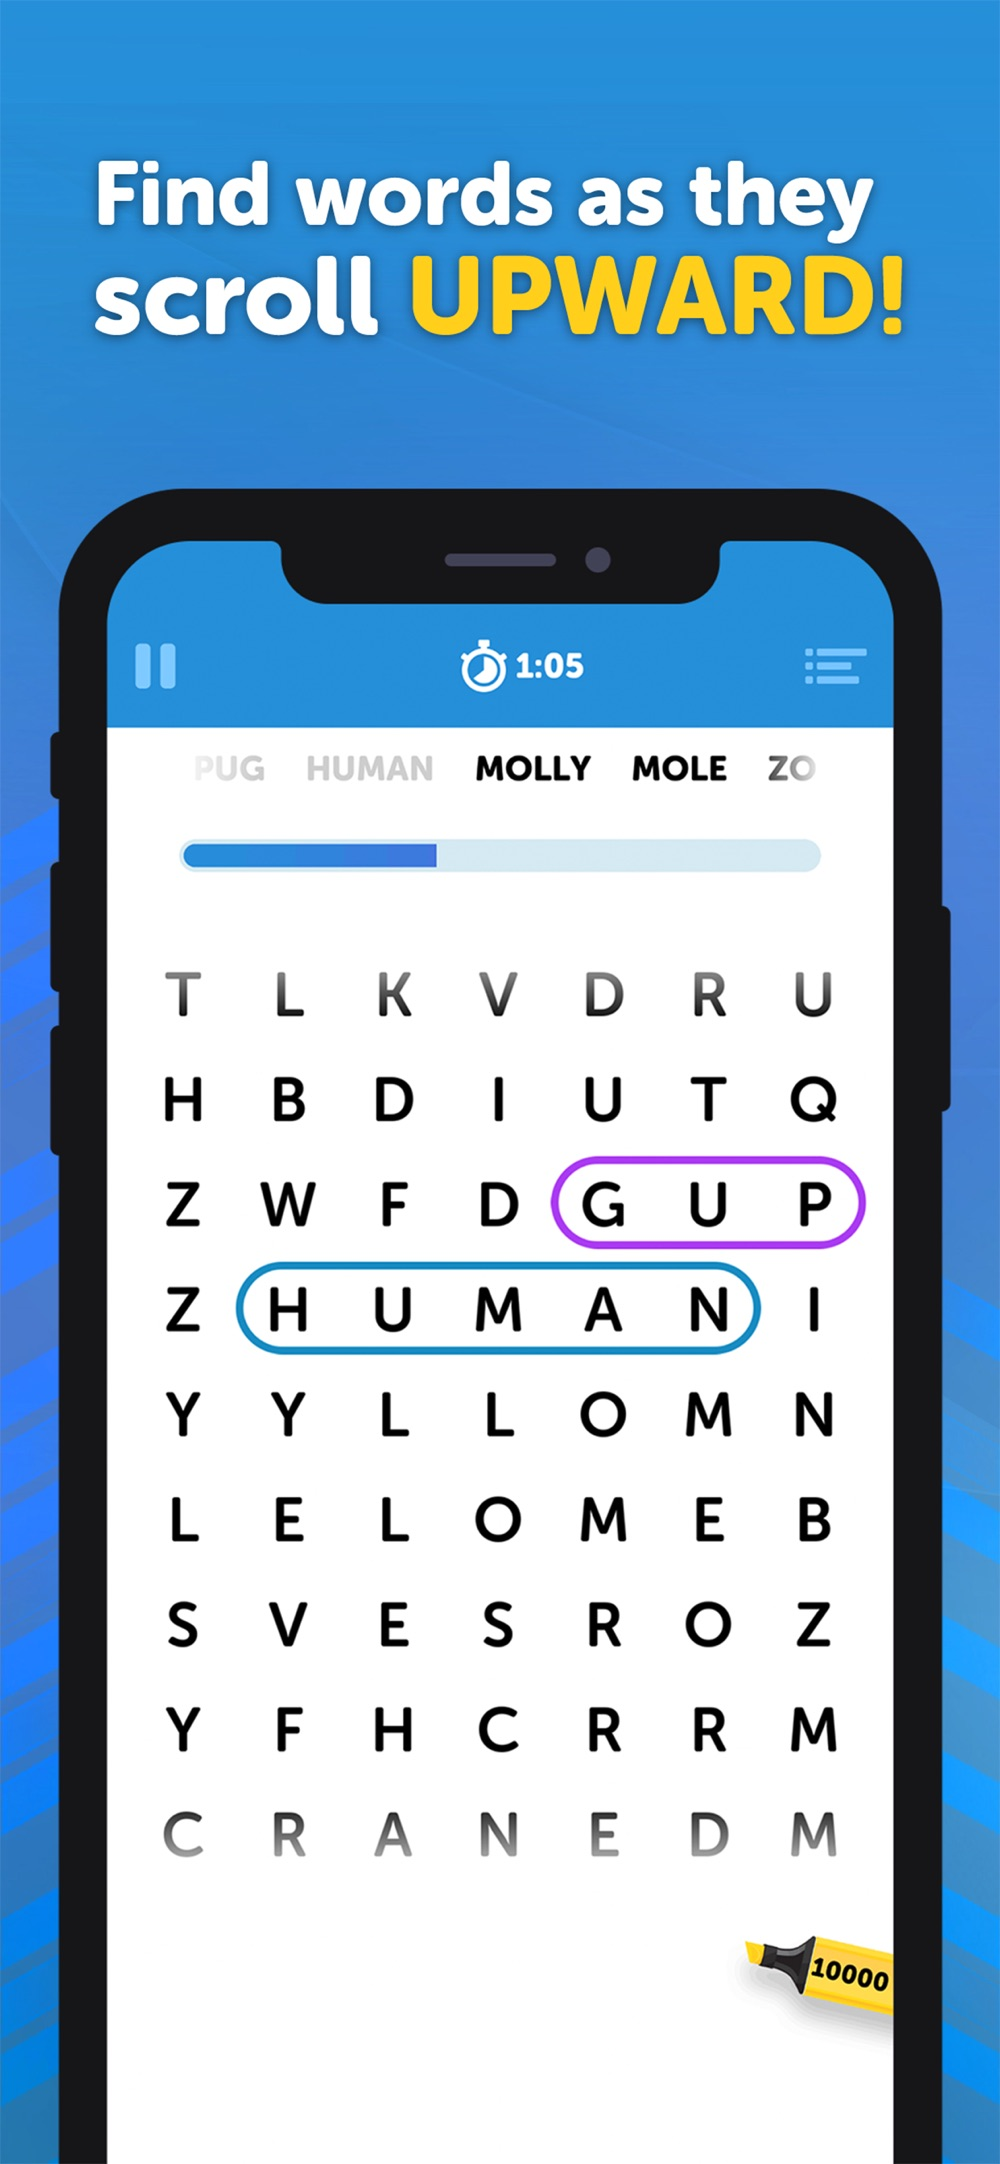 UpWord Search – Word Searches Cheat Codes